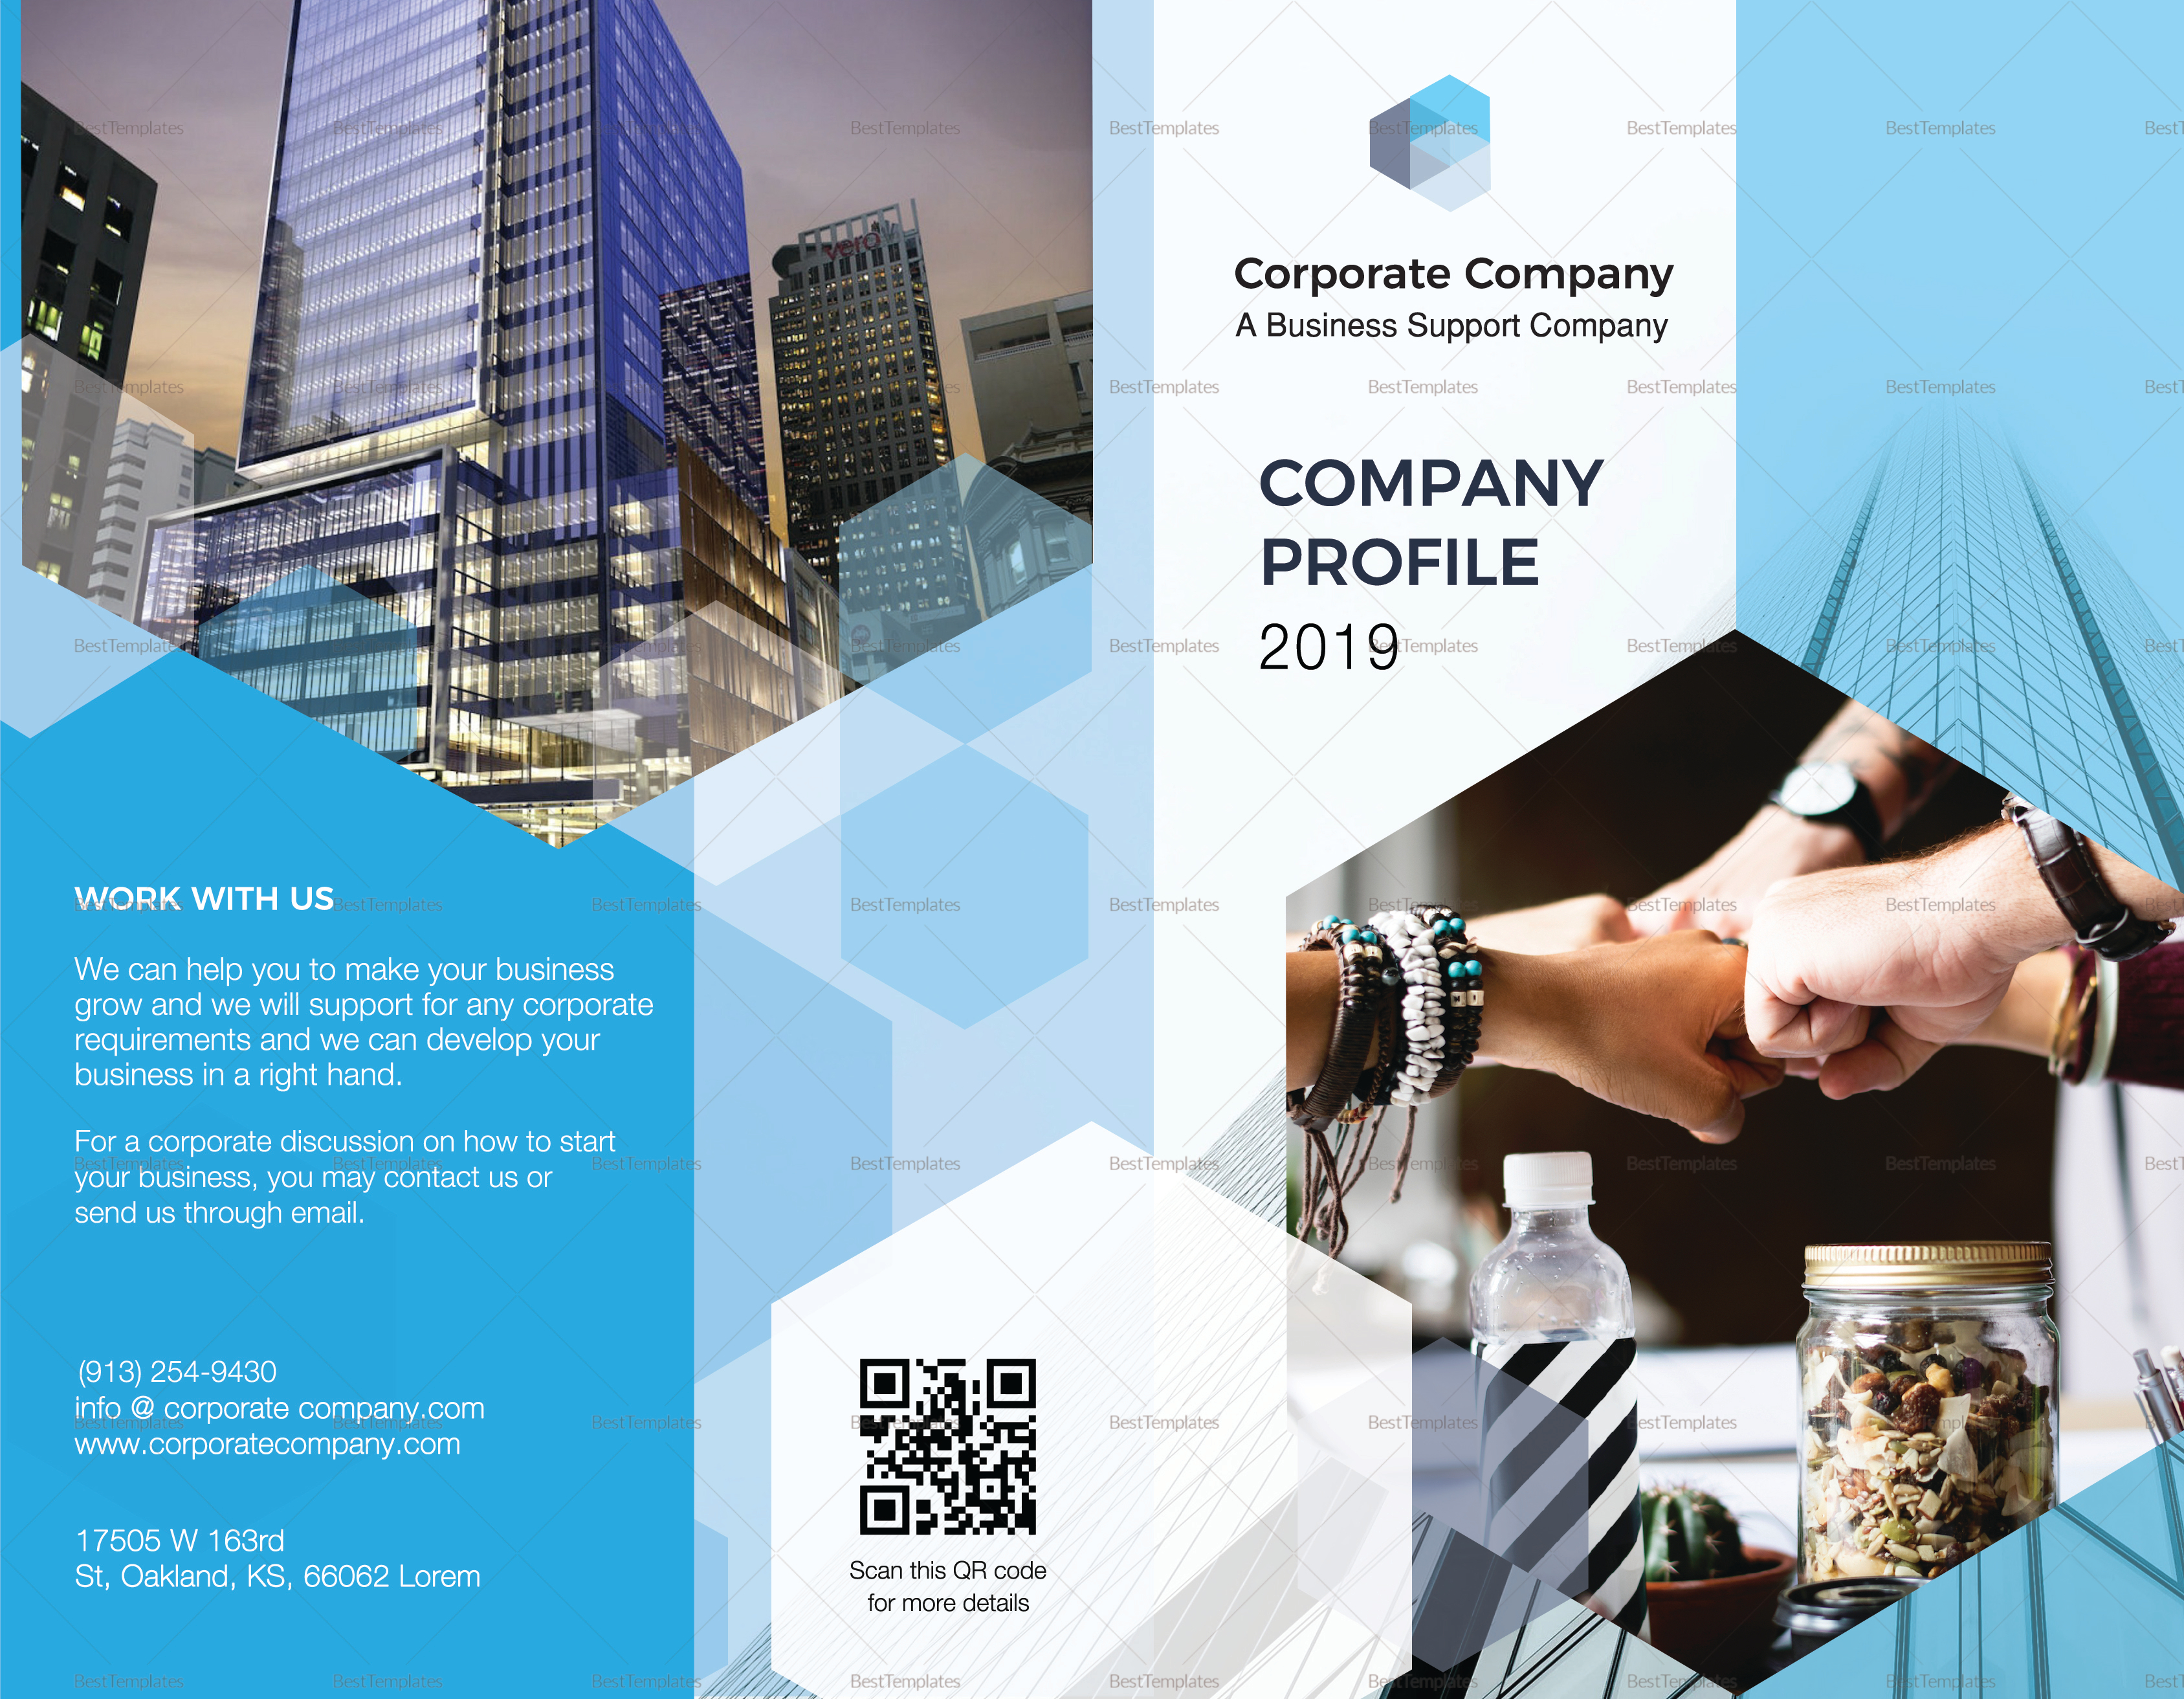 Company profile bi fold brochure design template in psd for Company profile brochure template